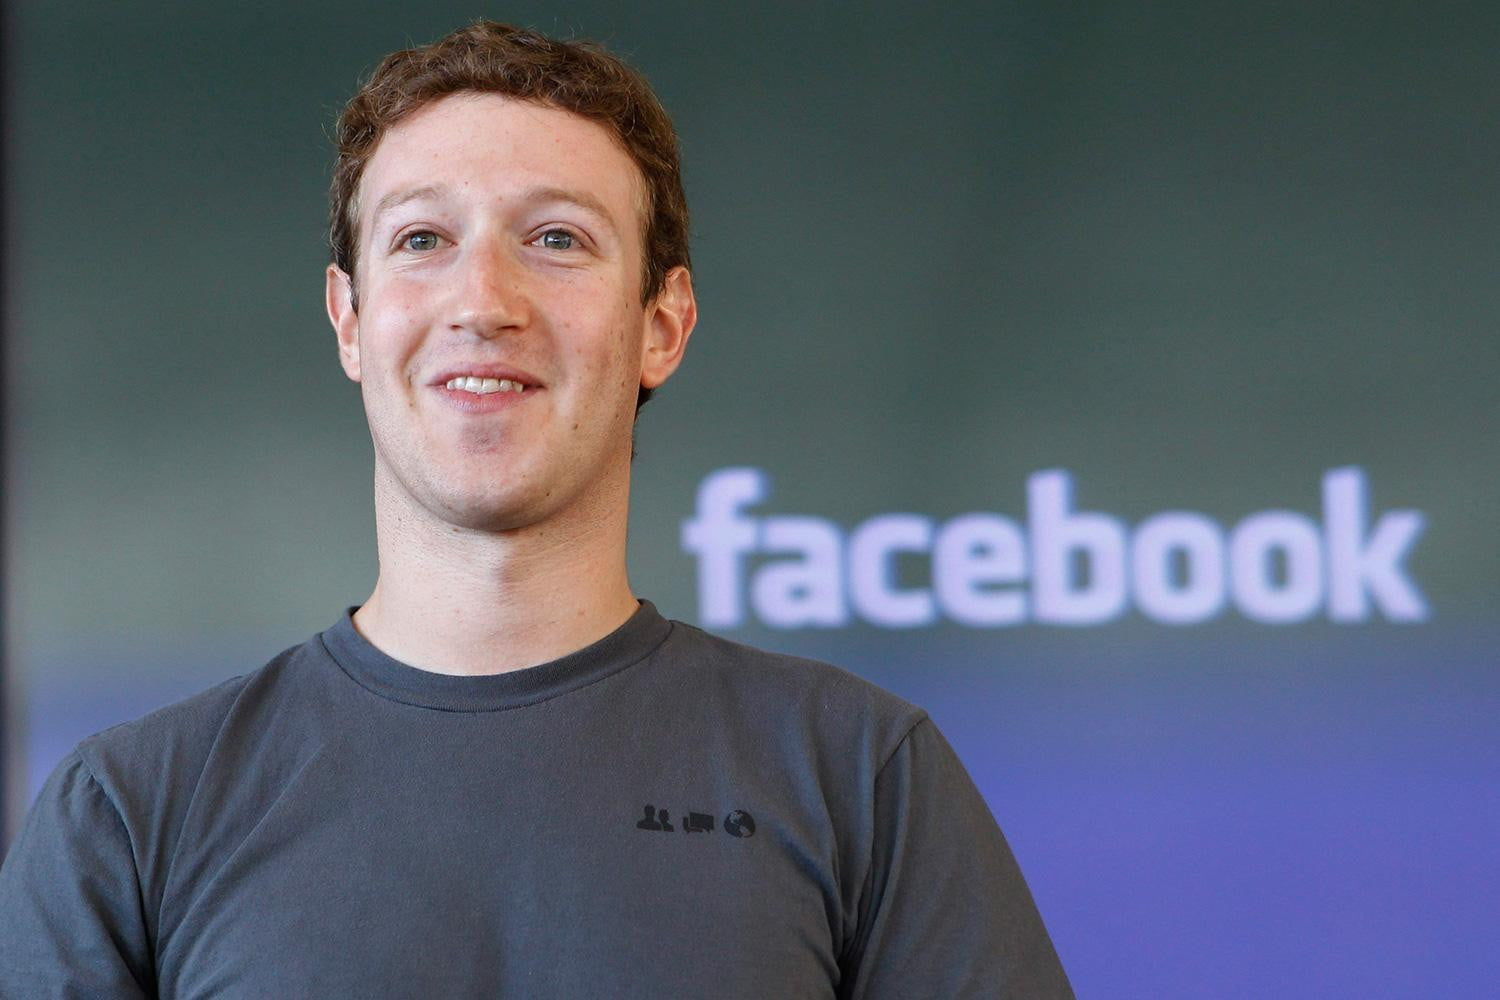 Zuckerberg Makes Fixing Facebook His 'Personal Challenge' For 2018